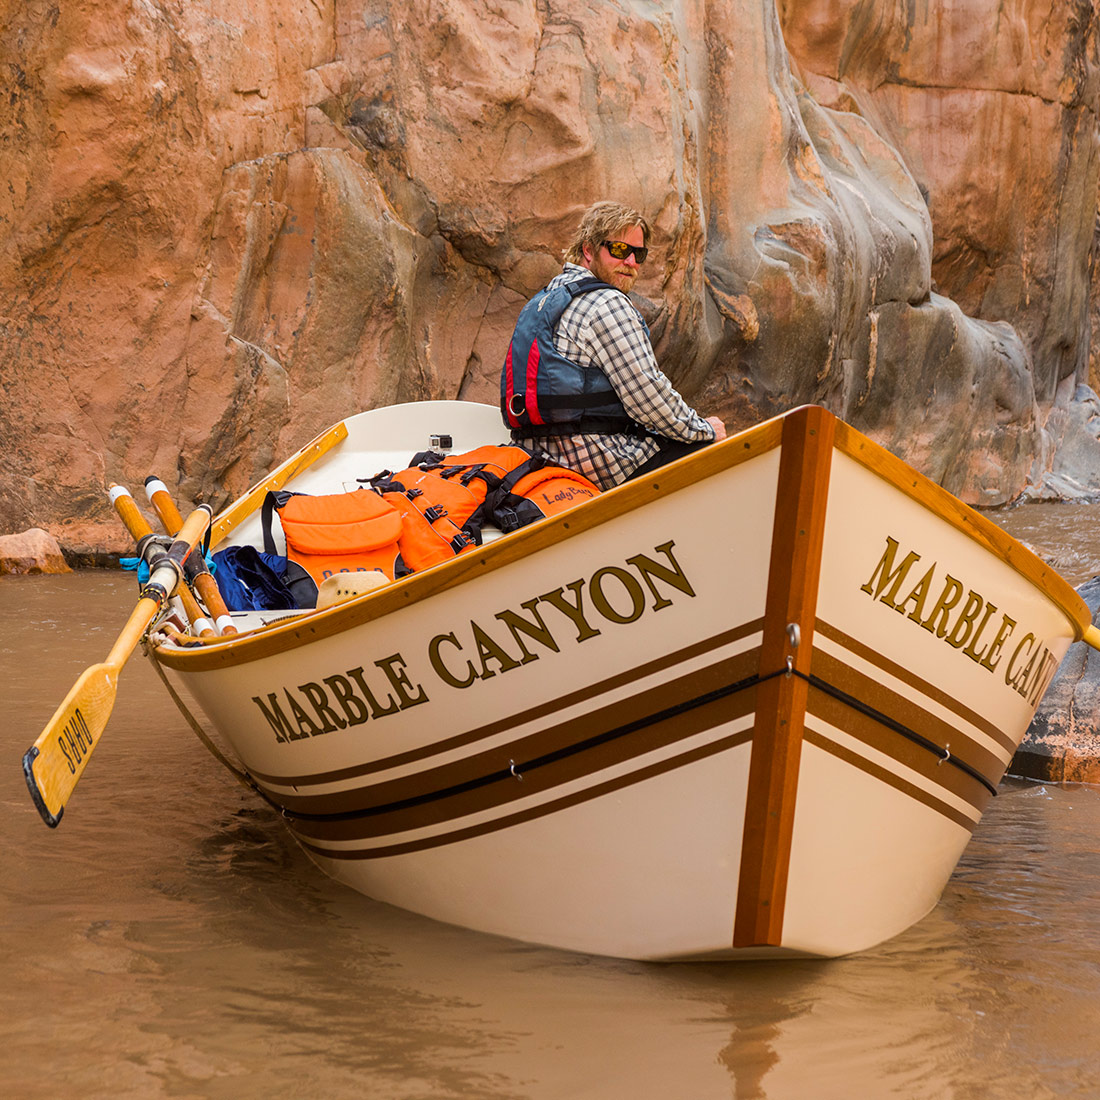 Marble Canyon Dory in the Grand Canyon